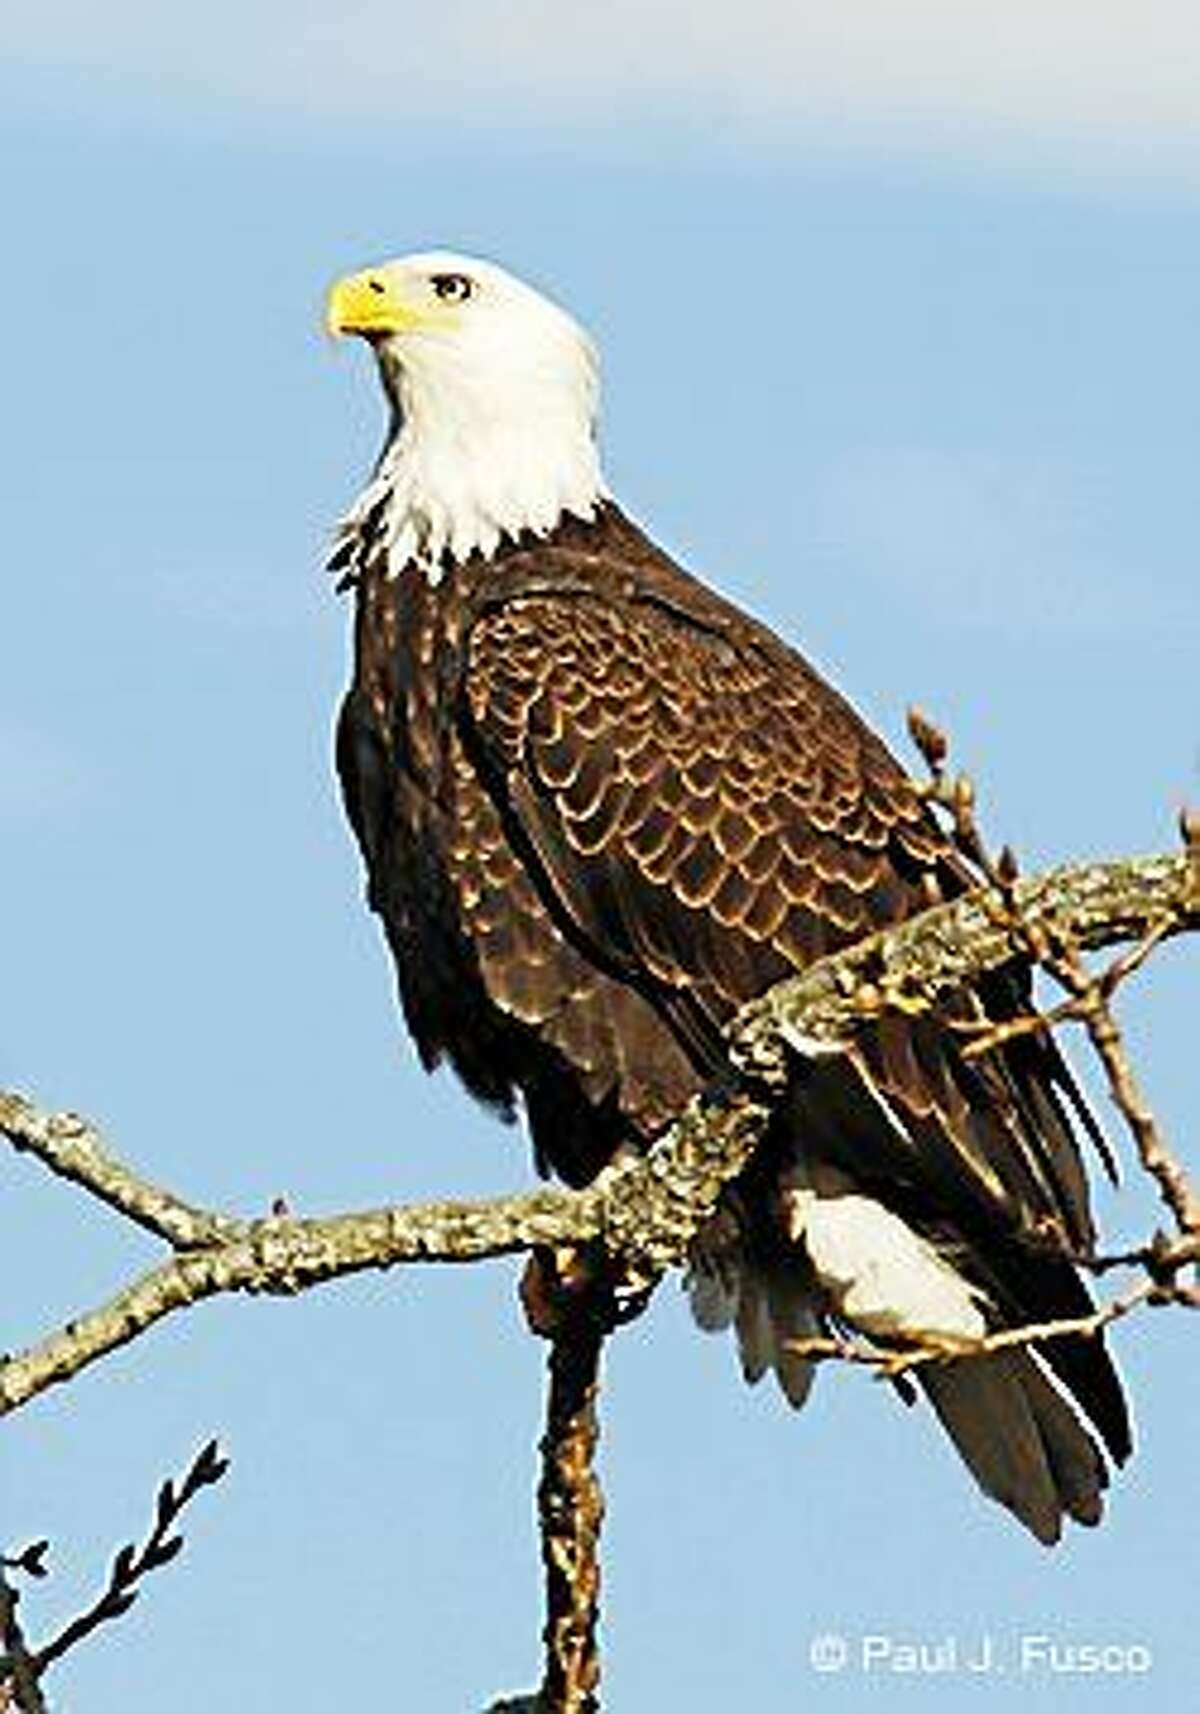 This bald eagle, like the one killed, was photographed in Connecticut.